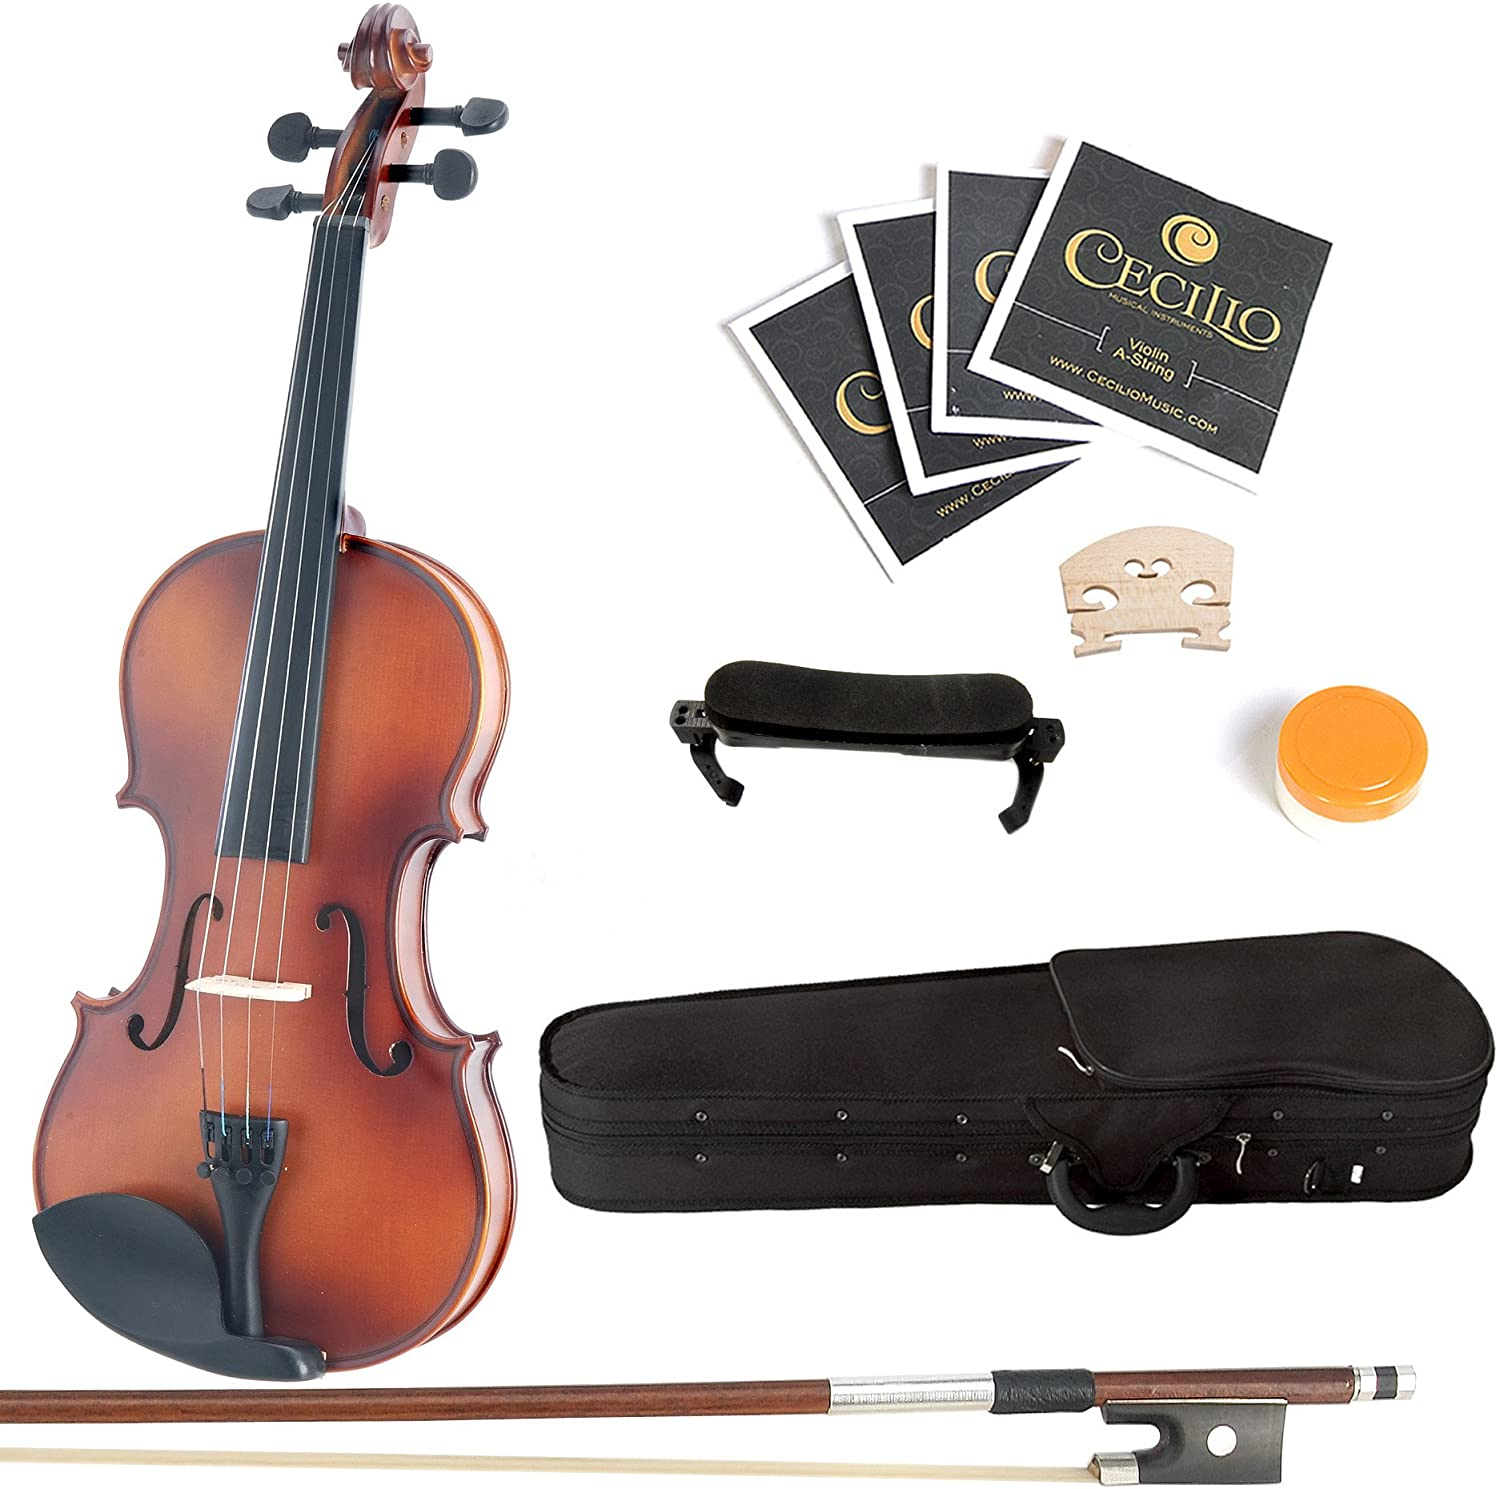 Amazon.com: Mendini Solid Wood Violin with Hard Case, Bow, Rosin and Extra Strings (4/4, Antique): Musical Instruments